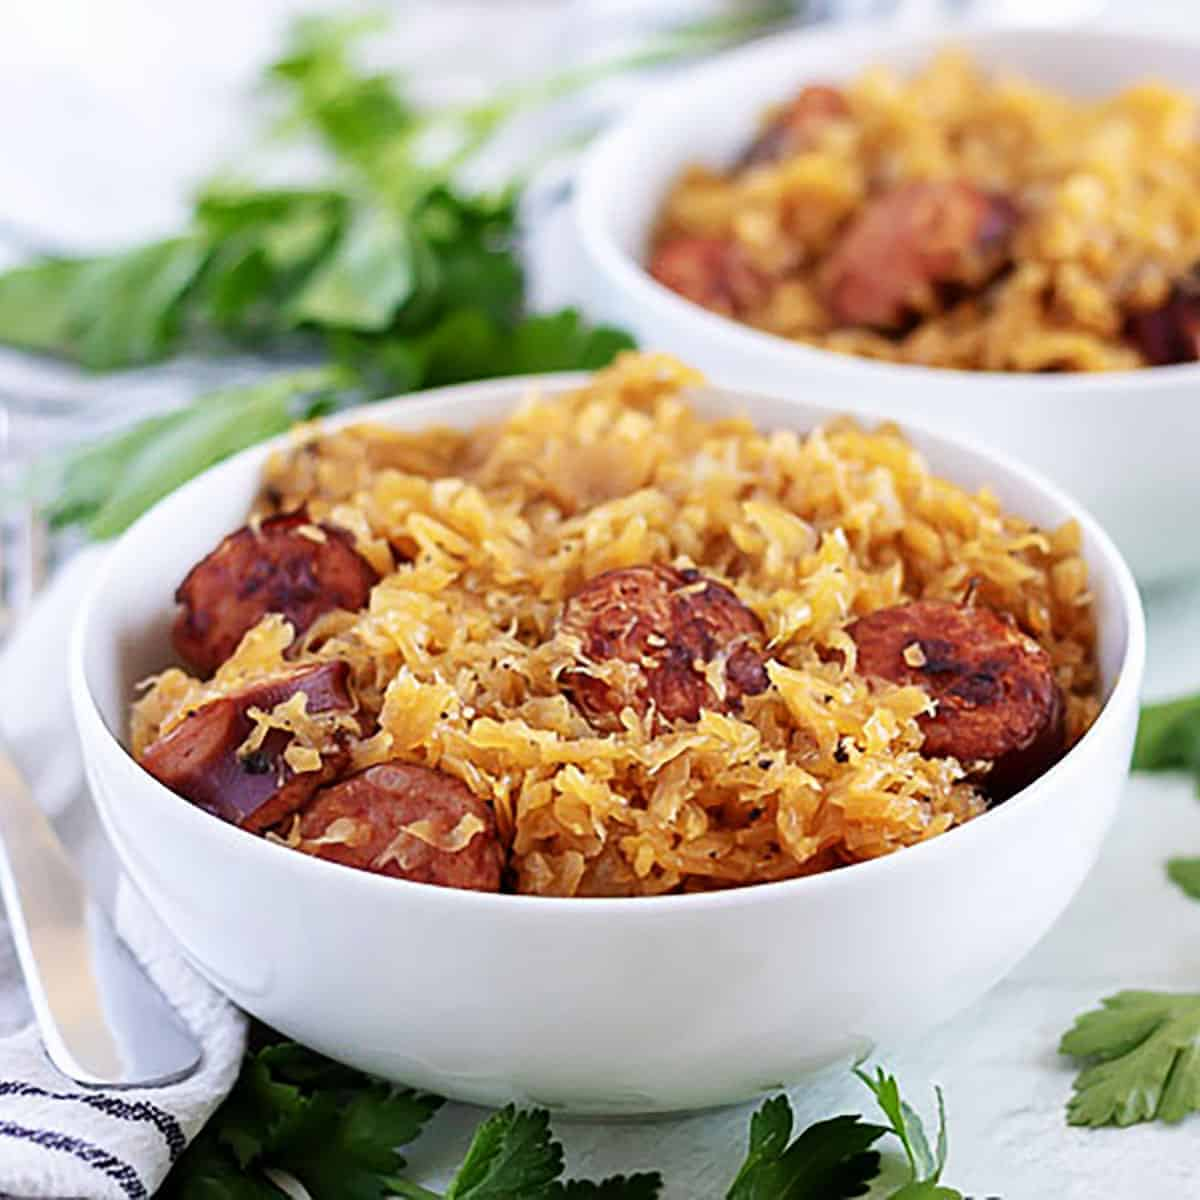 White bowl filled with sauerkraut and sauteed kielbasa sausage.